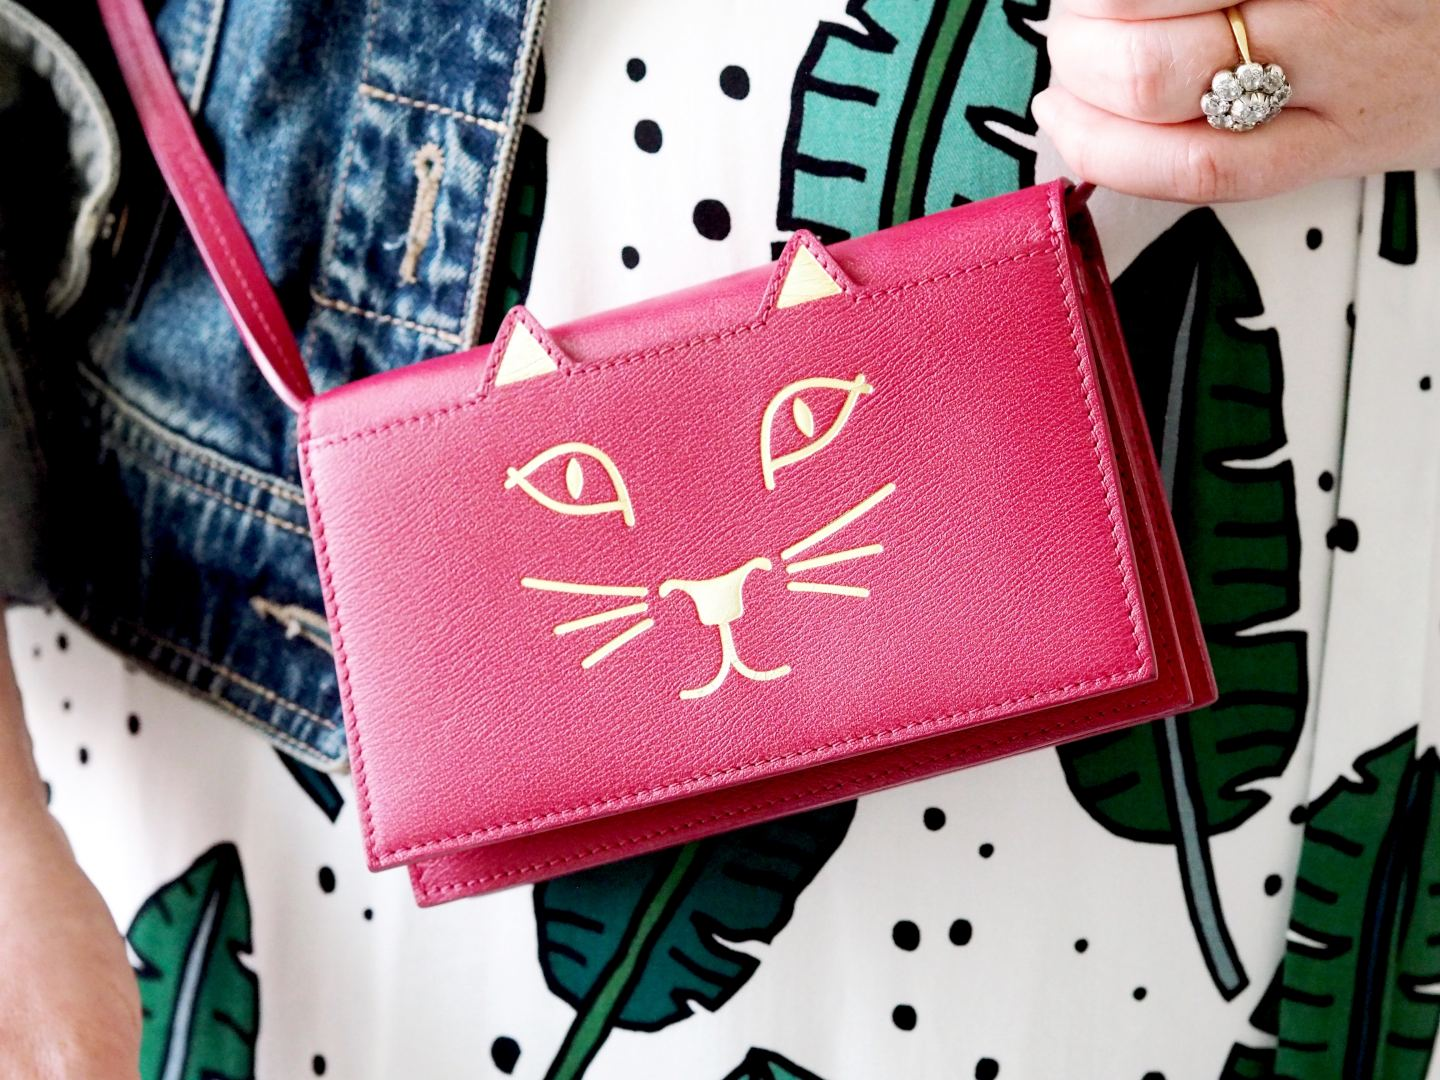 Why I Needed The Charlotte Olympia Kitty Handbag Fashion For Lunch